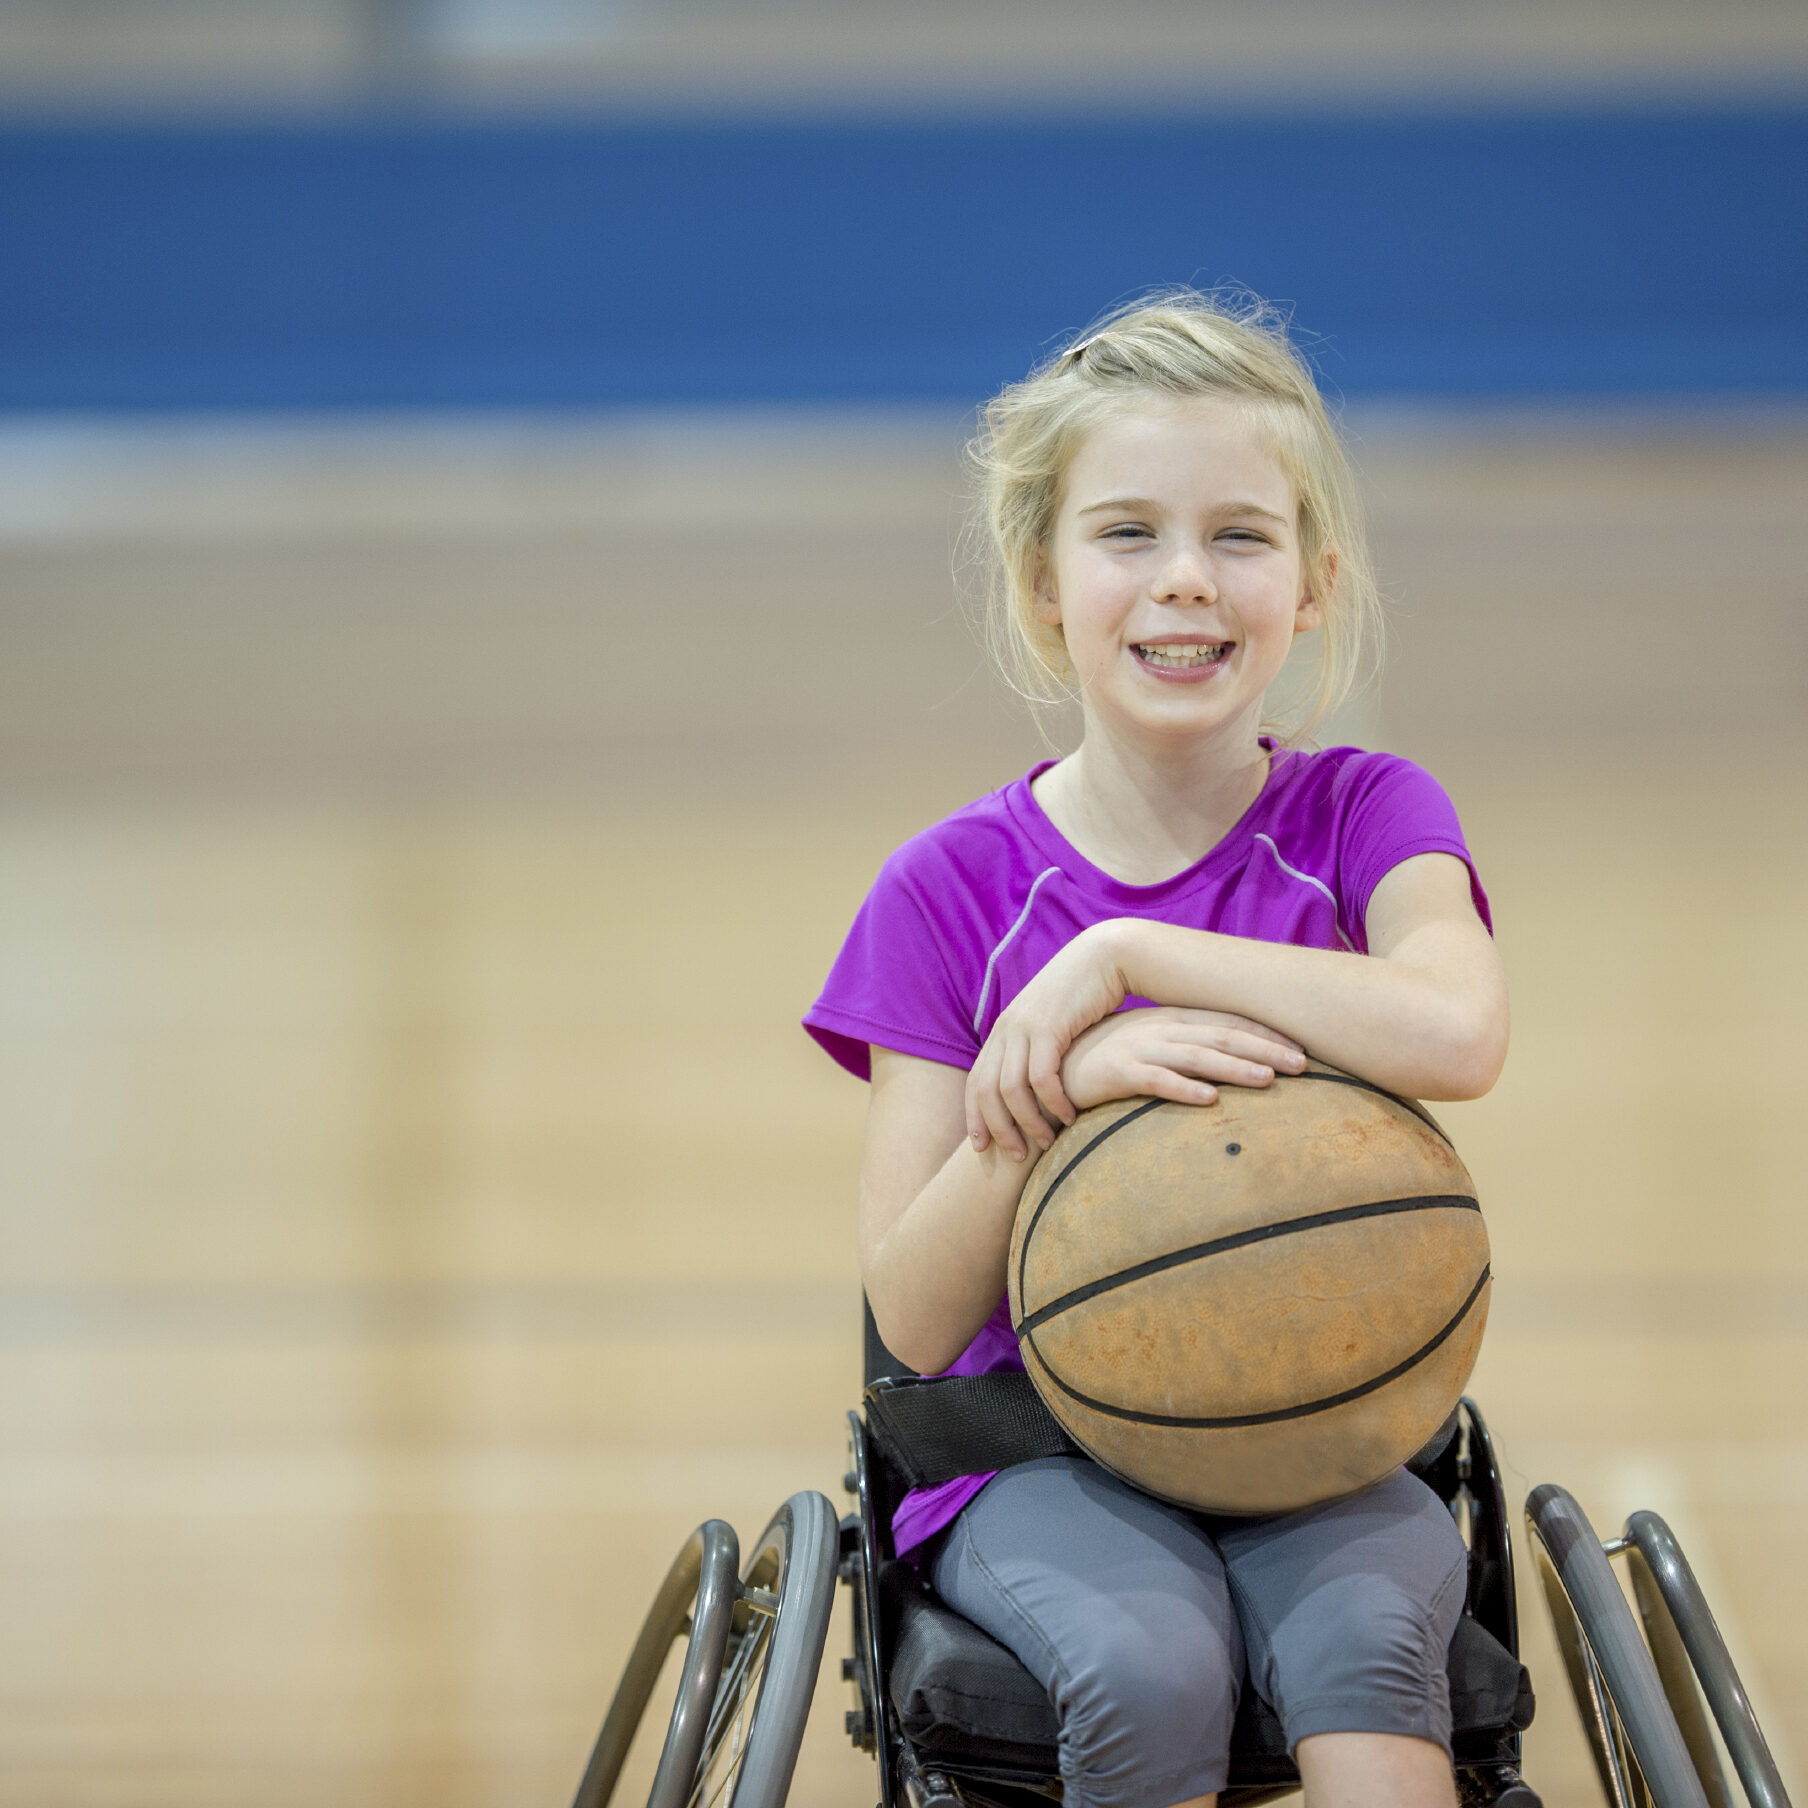 A little girl with a physical disability is playing basketball in her wheelchair.